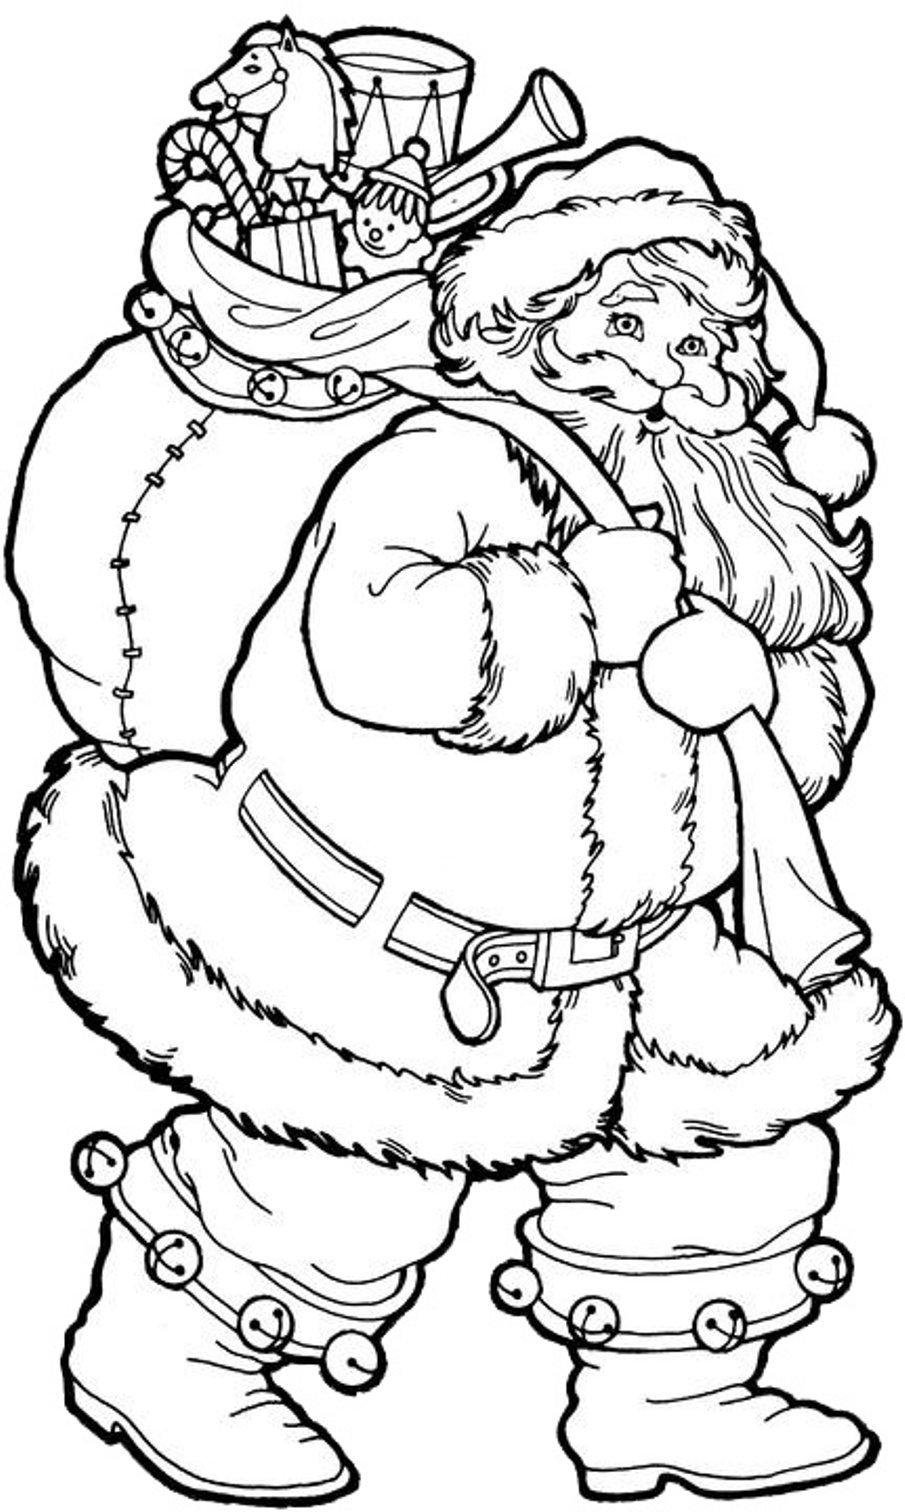 Santa On A Surfboard Coloring Page With Surfing Pages